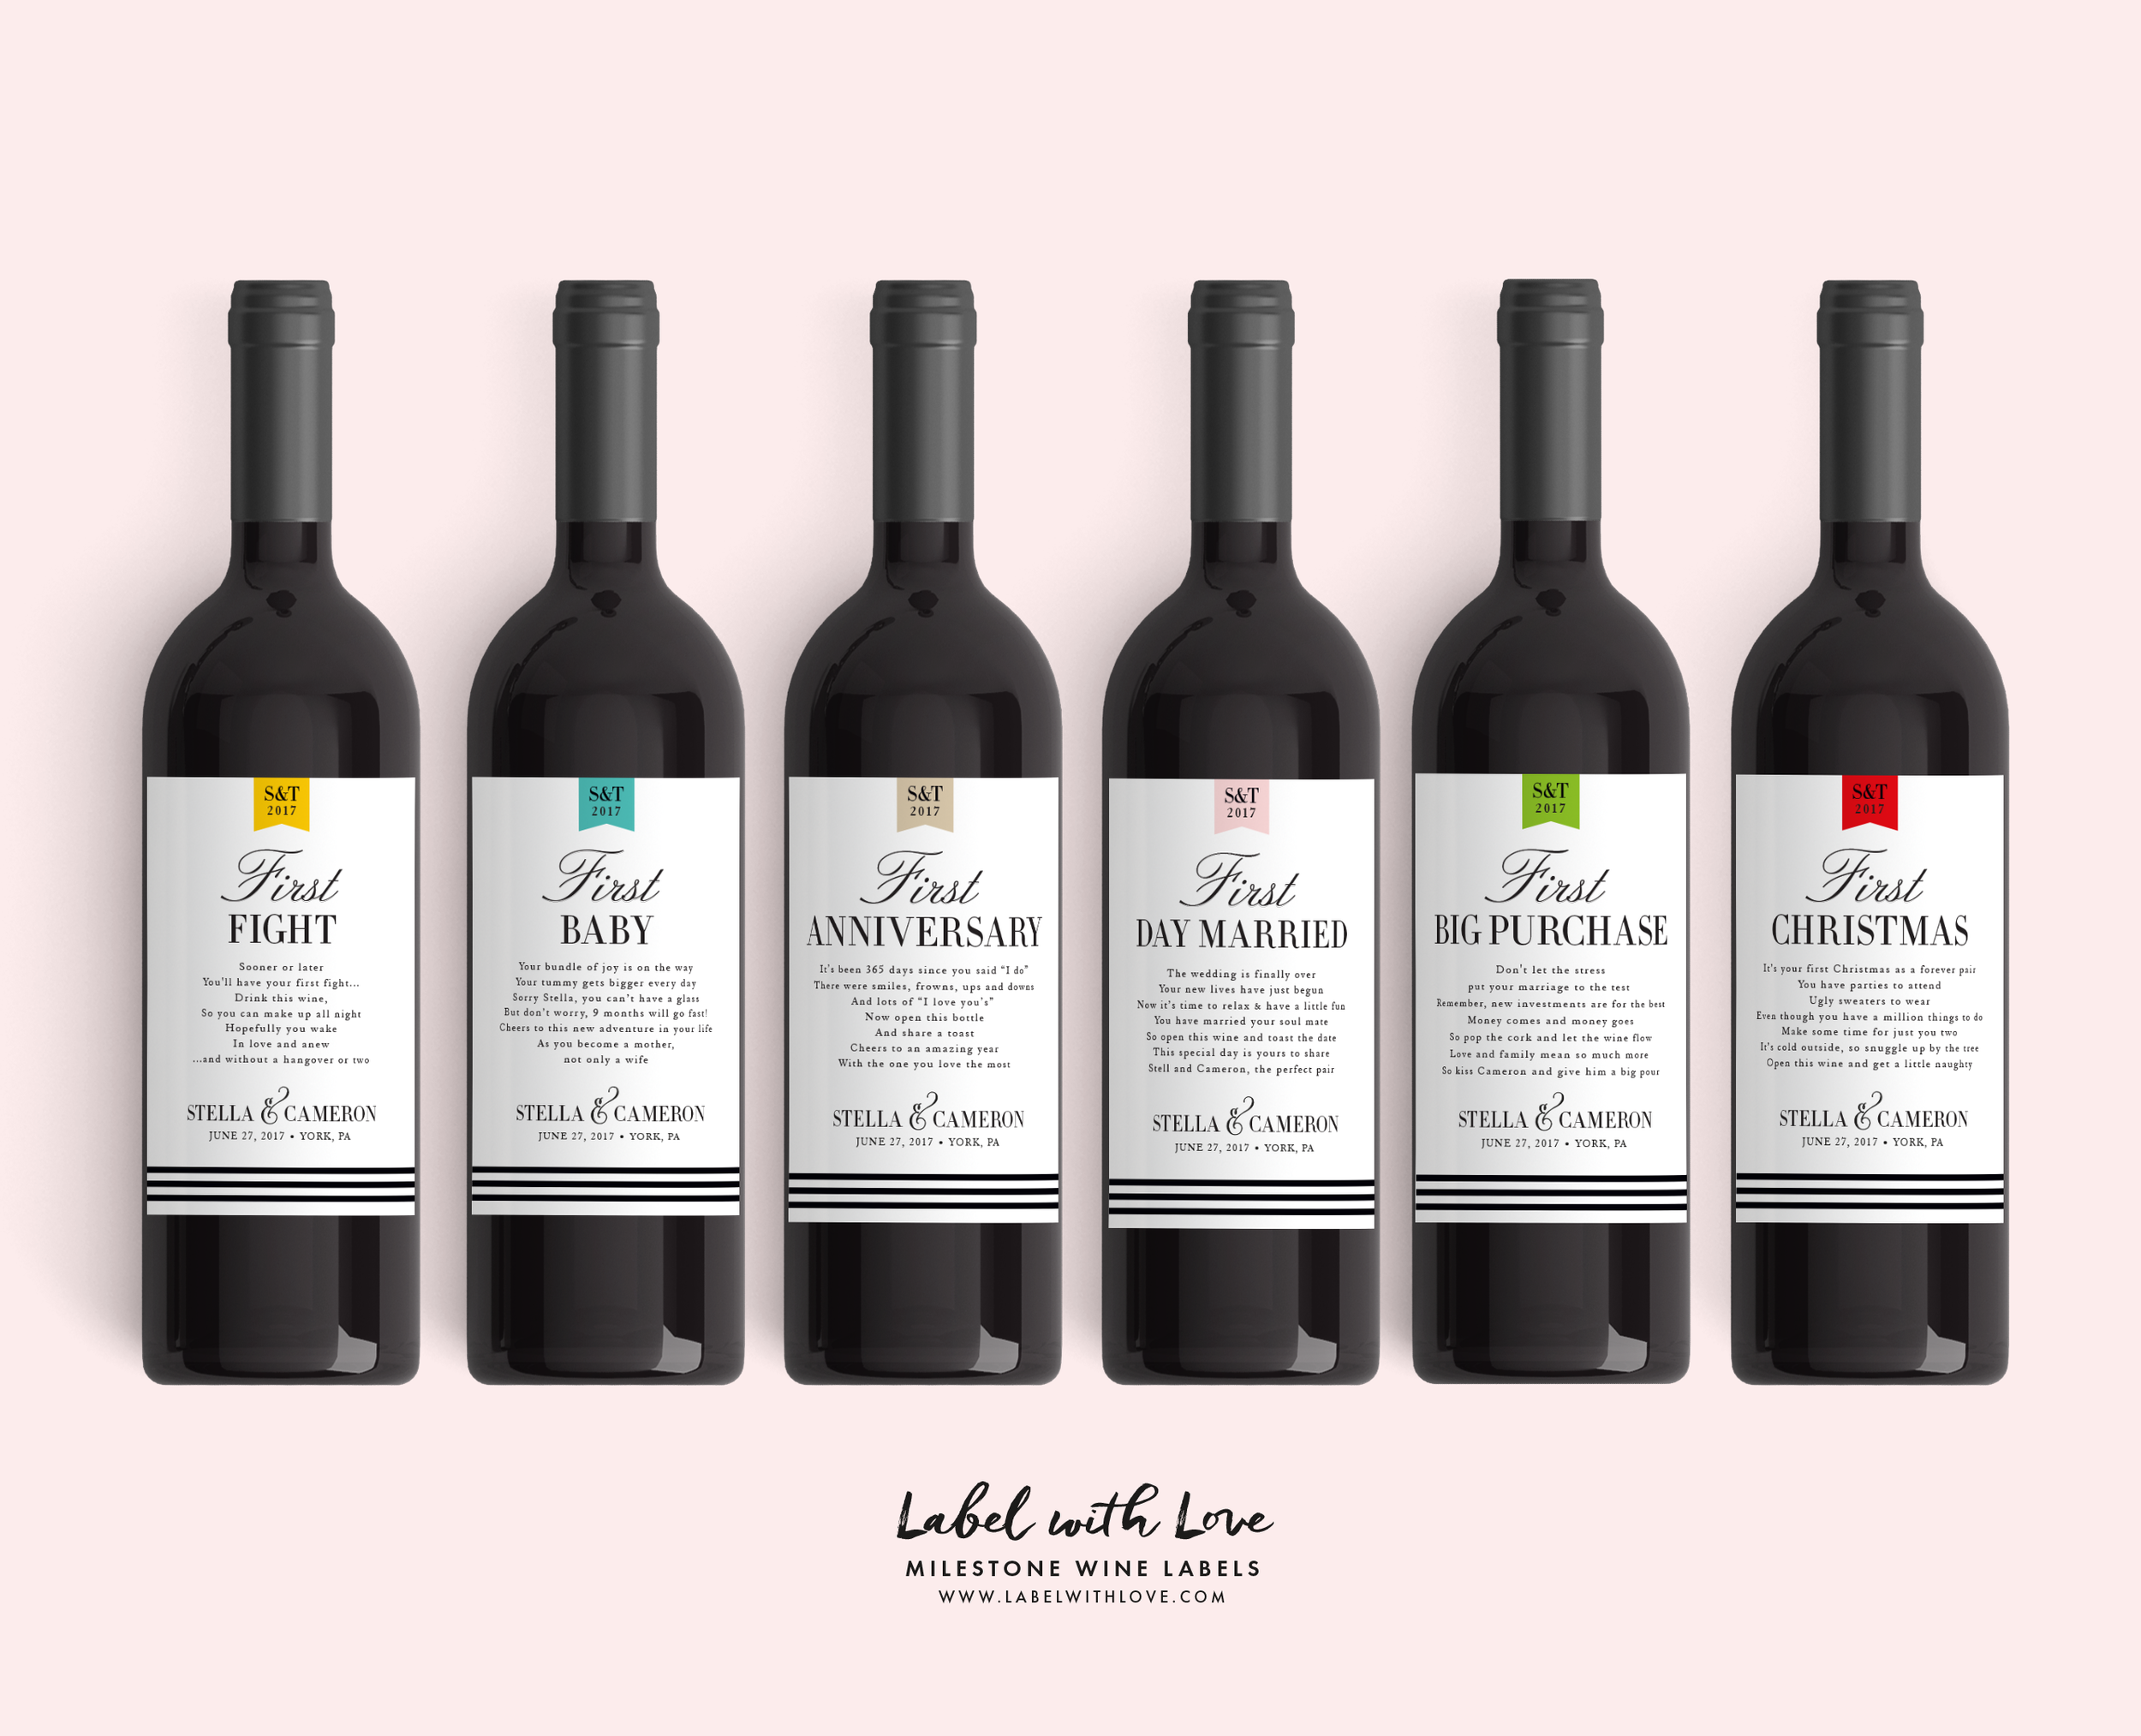 Married Milestone Wine Labels - by www.labelwithlove.com